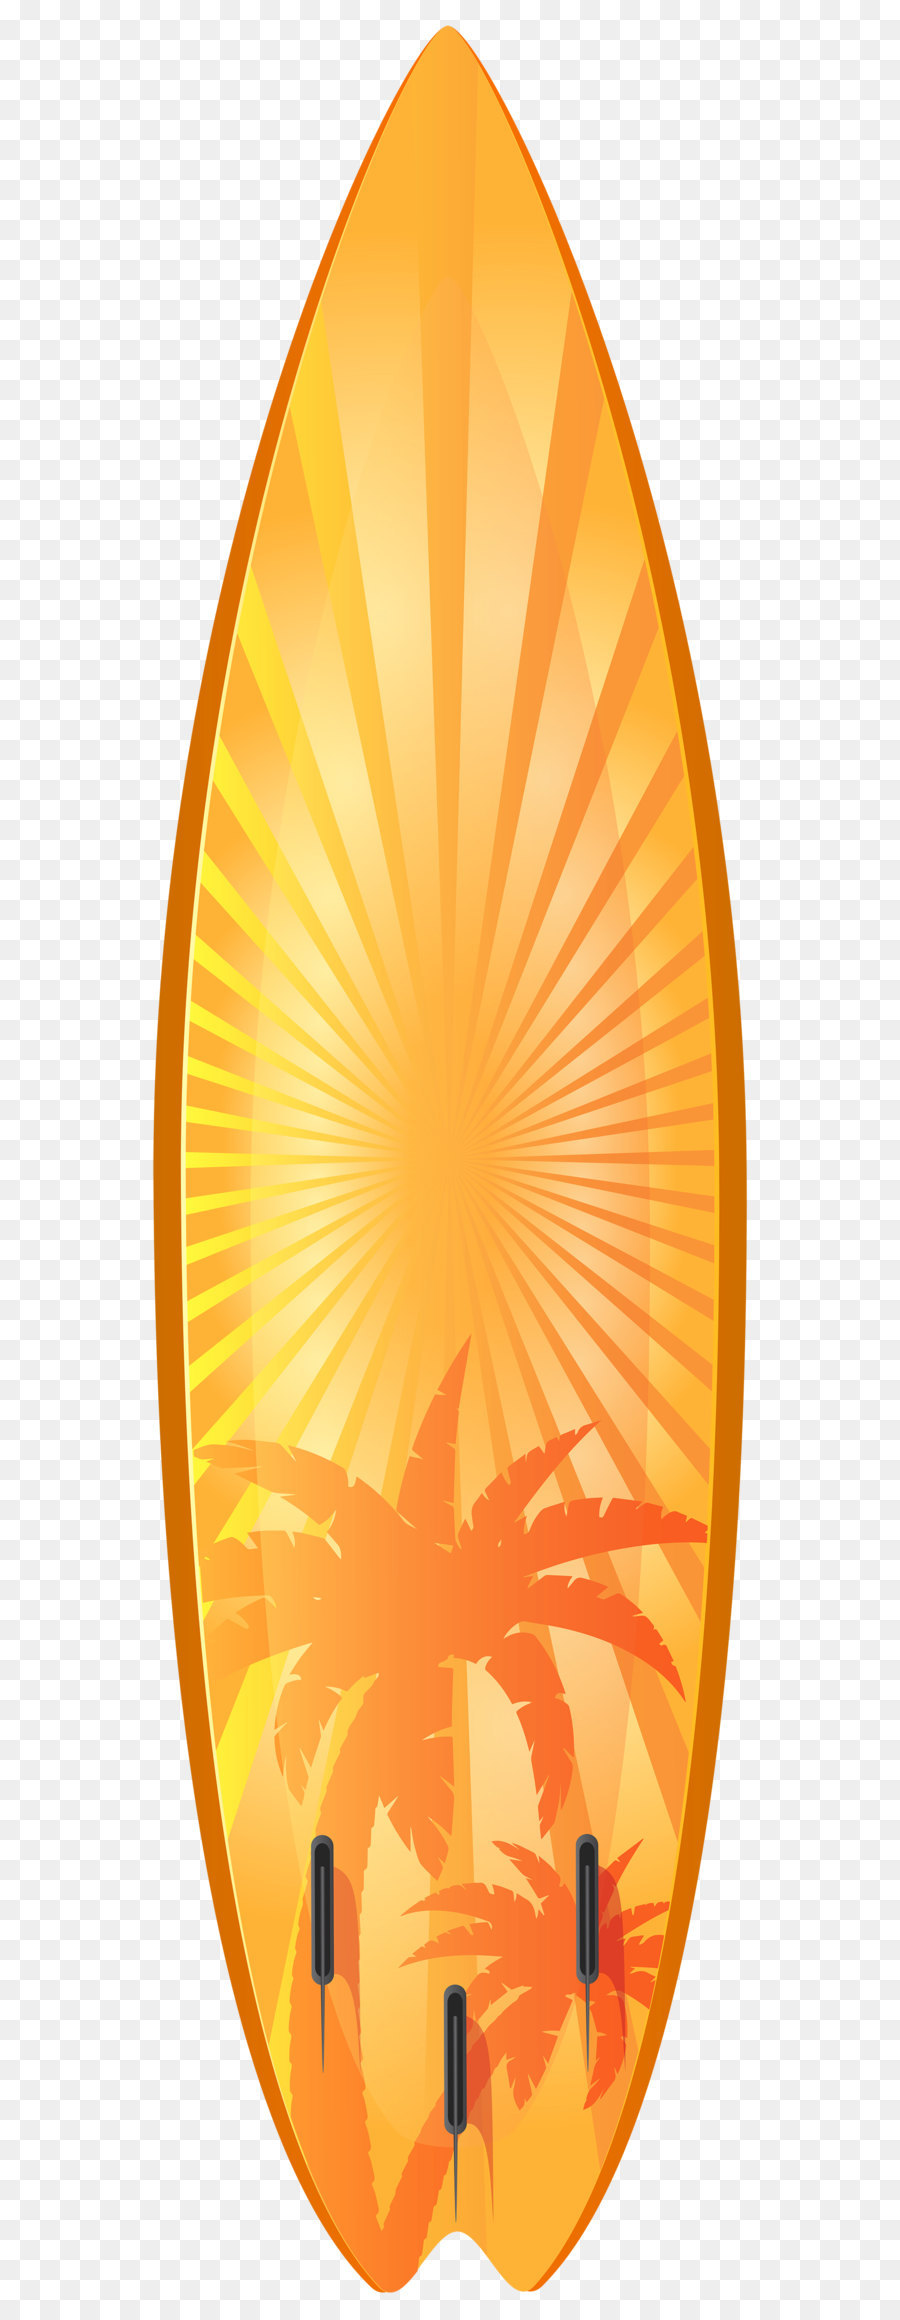 Surfboard Surfing Clip art - Orange Surfboard with Palm Trees ...